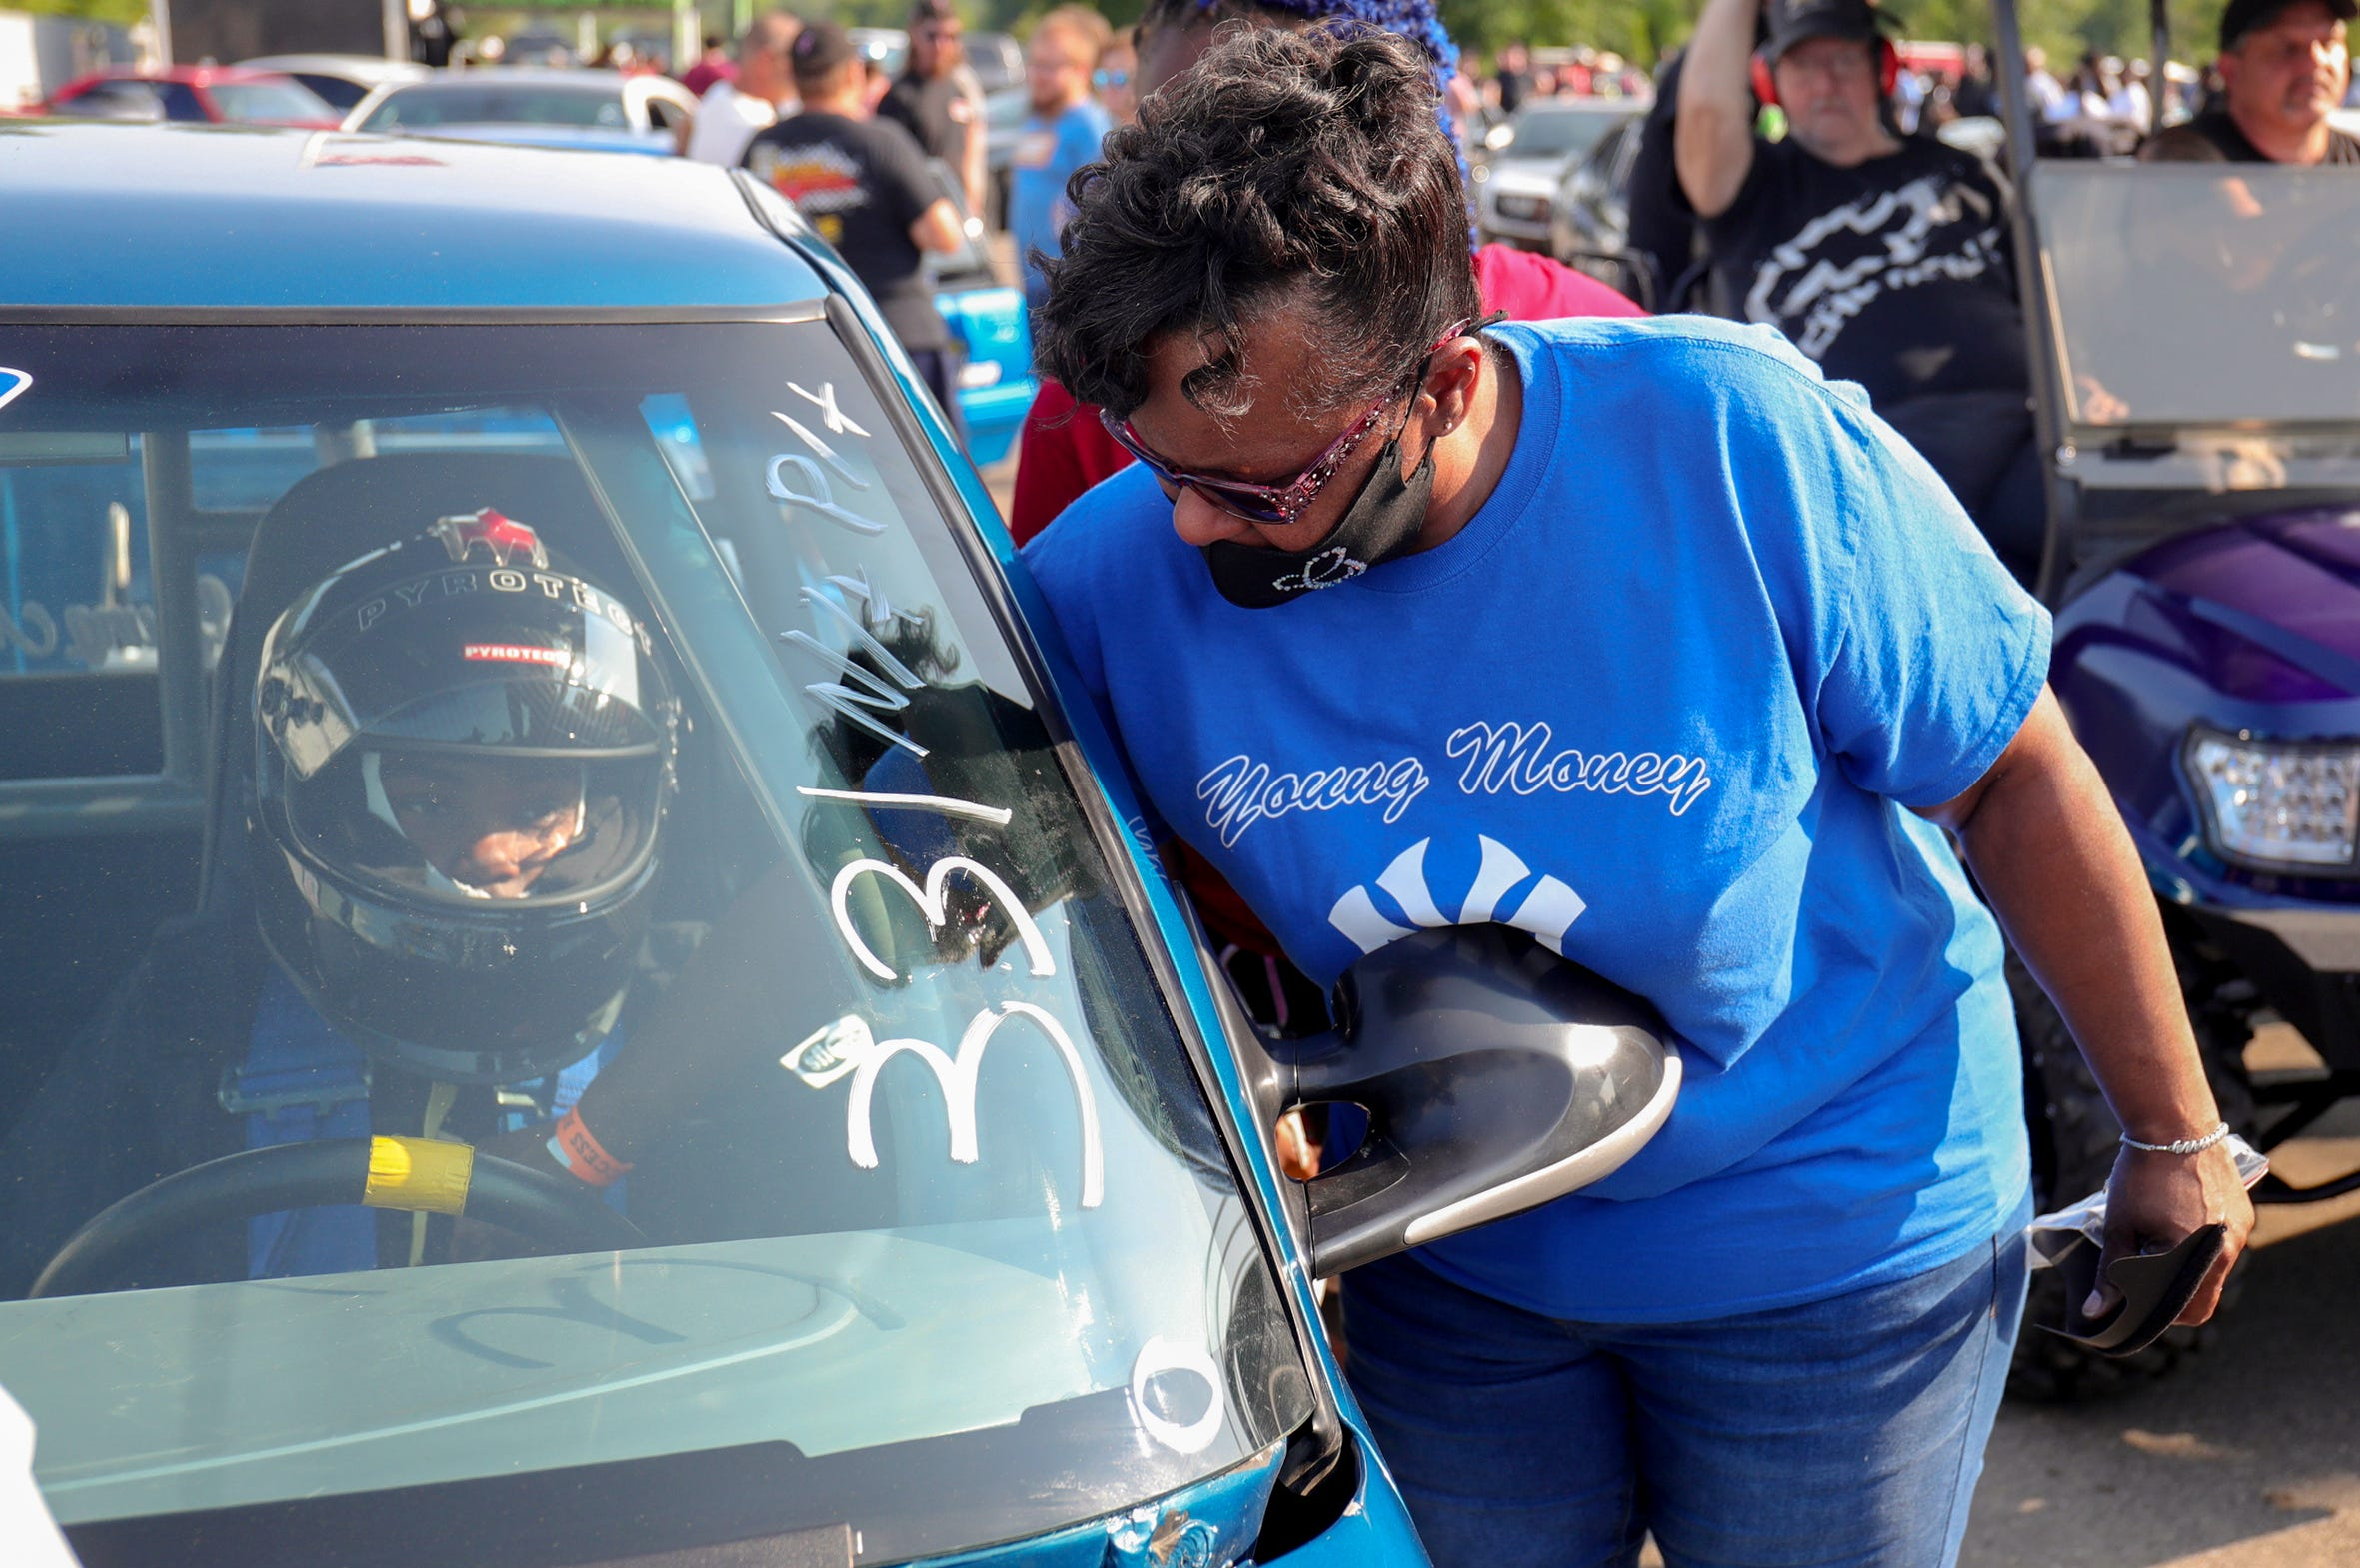 """Gail Fox Wilson checks to make sure her son Joemari Fox, 21, is strapped securely into his car """"Payroll"""" before his pass at Lapeer International Dragway Saturday, July 17, 2021. Gail pulled on his seatbelts several times before the race saying, """"it helps me stay calm knowing I have checked to see Joemari is safely strapped in before he races""""."""